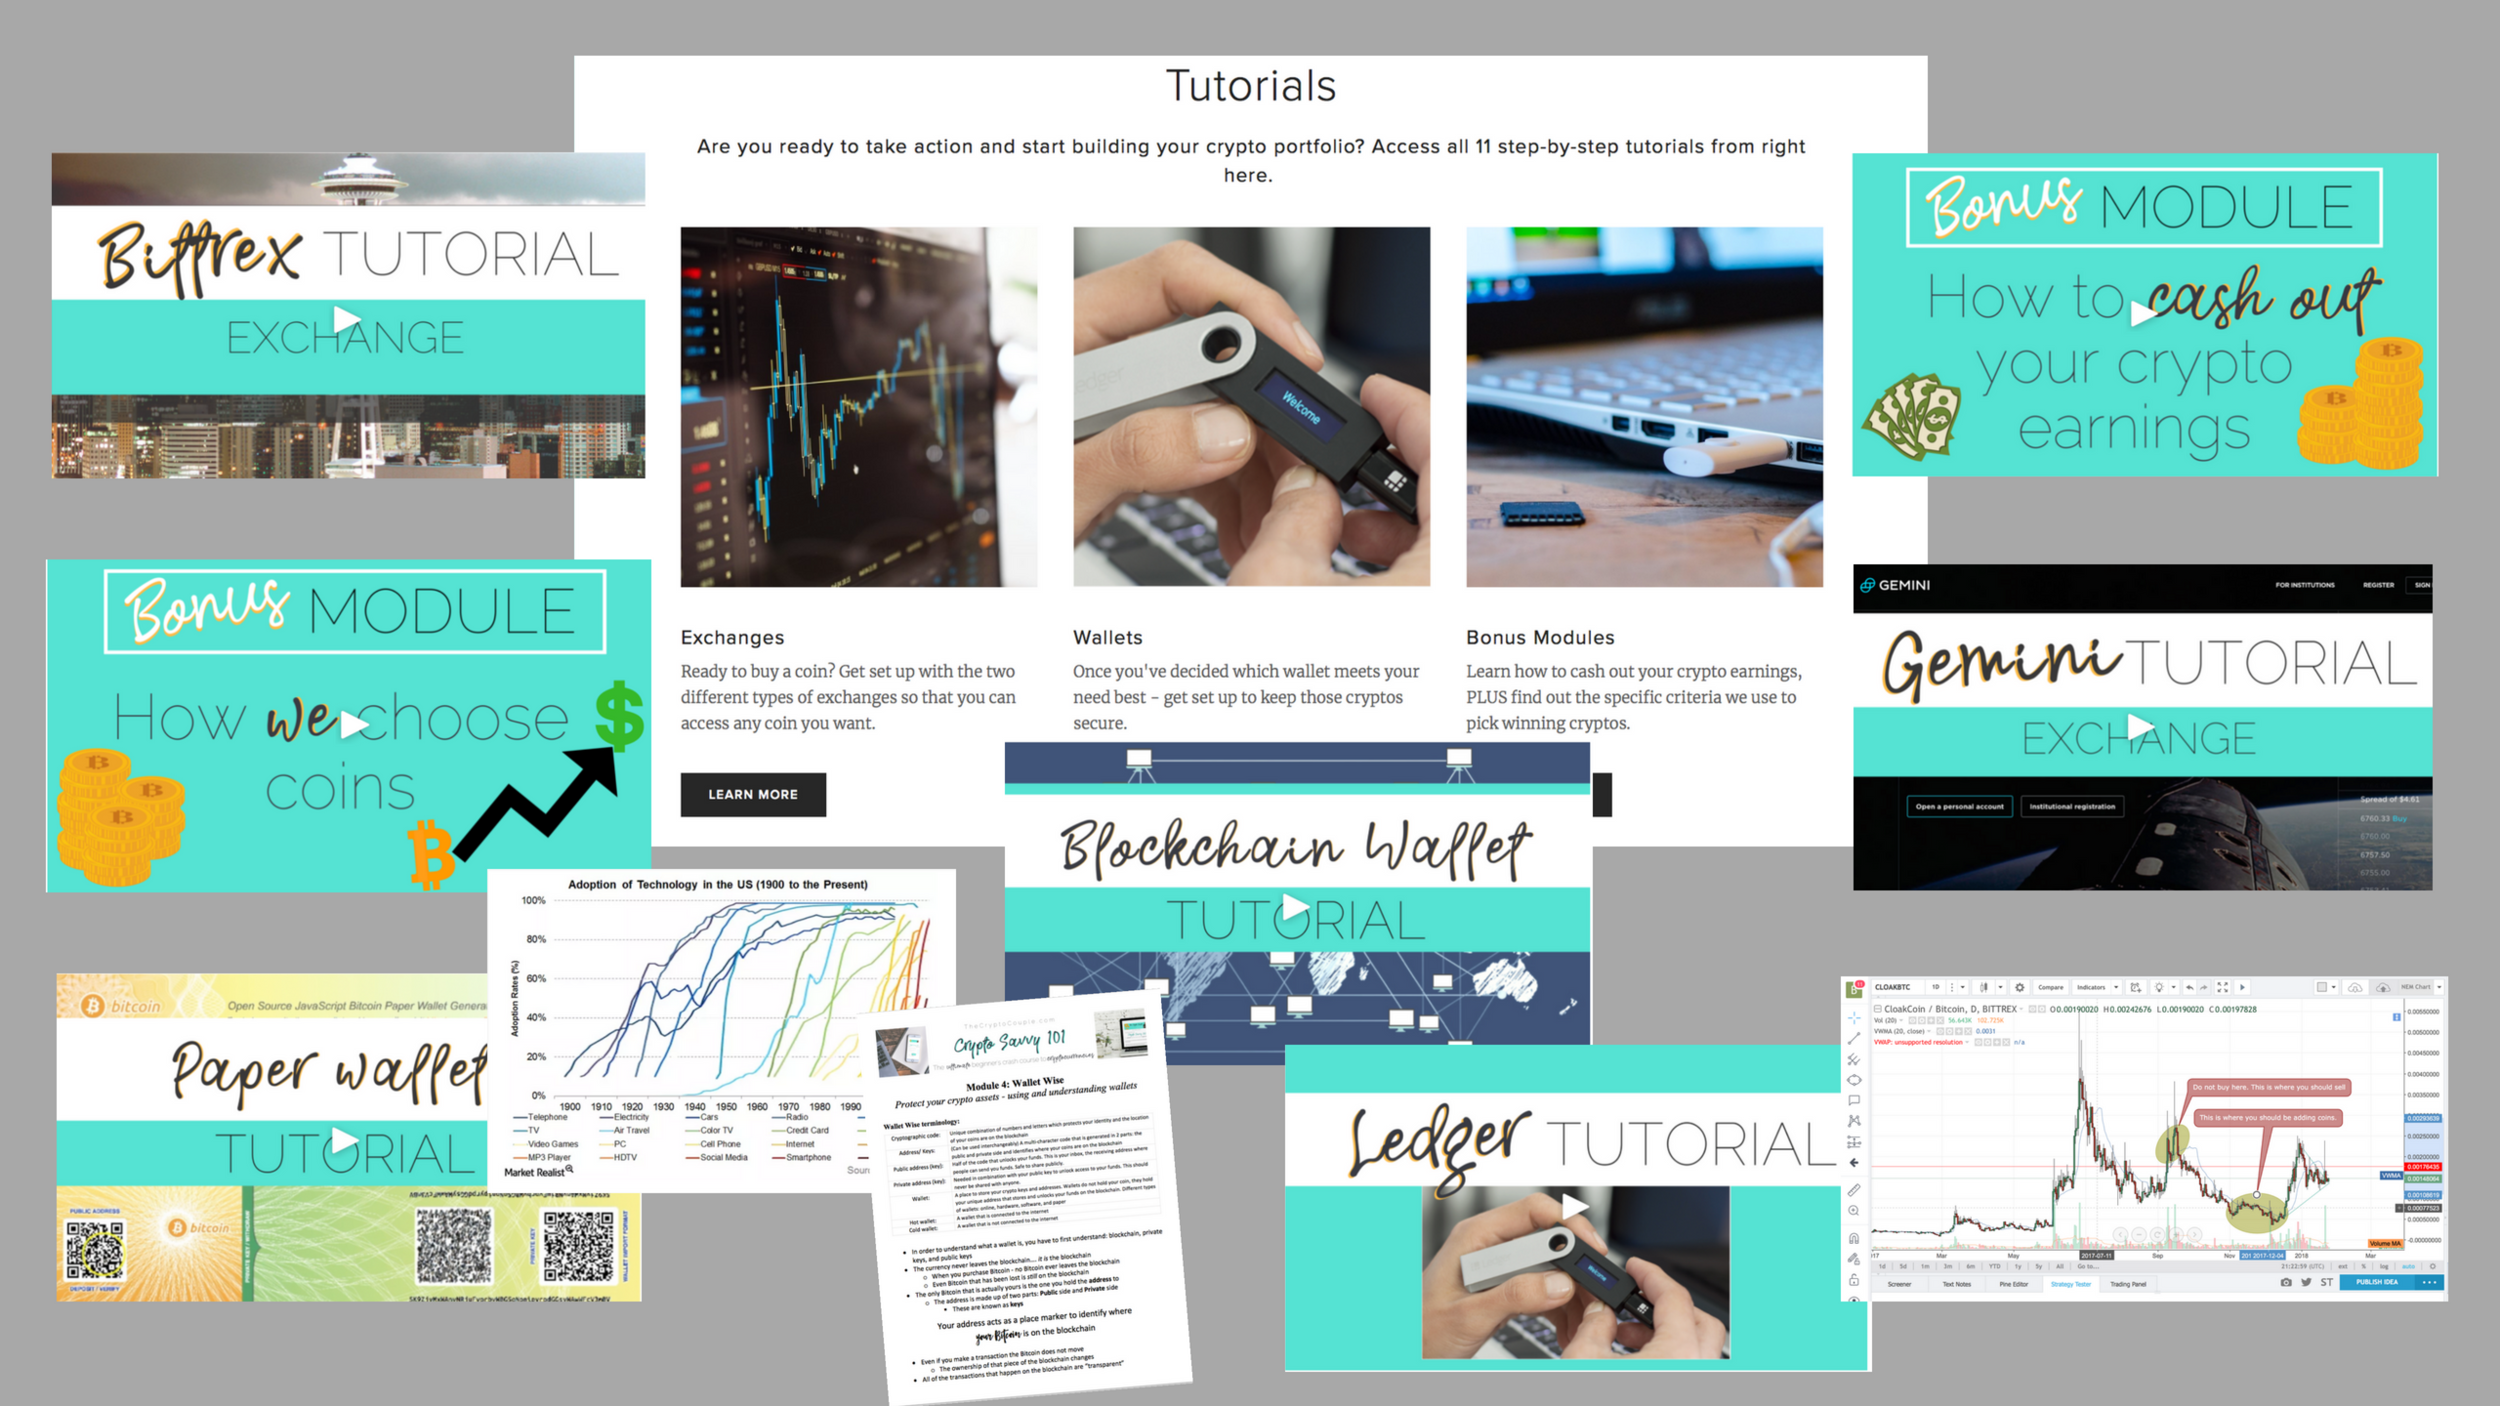 11 Step-by-Step Tutorials - After you've got the basics down take action with confidence by following along with a step-by-step tutorial for every technological platform covered in the course.